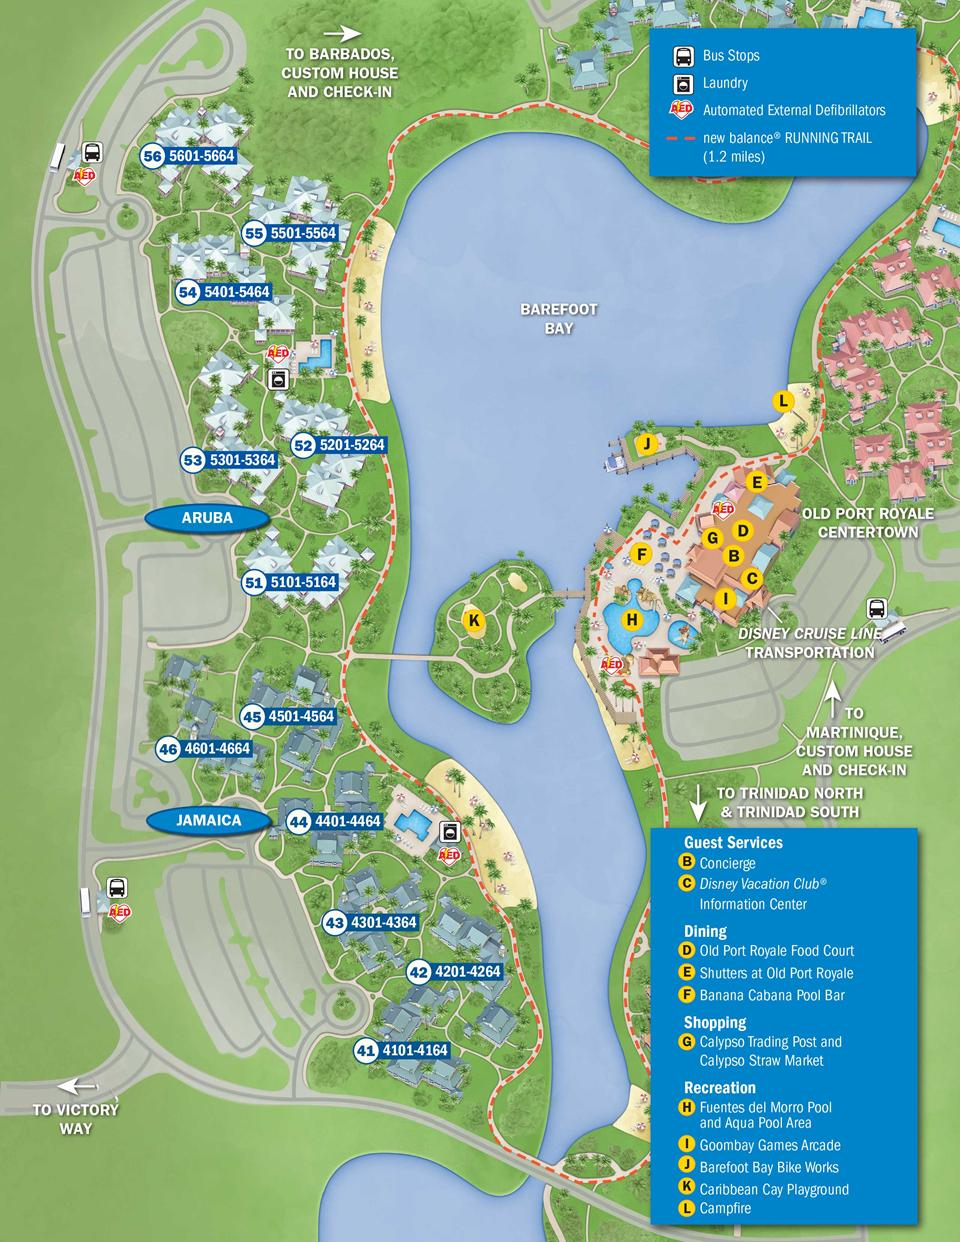 April Walt Disney World Resort Hotel Maps Photo Of - Caribbean map aruba